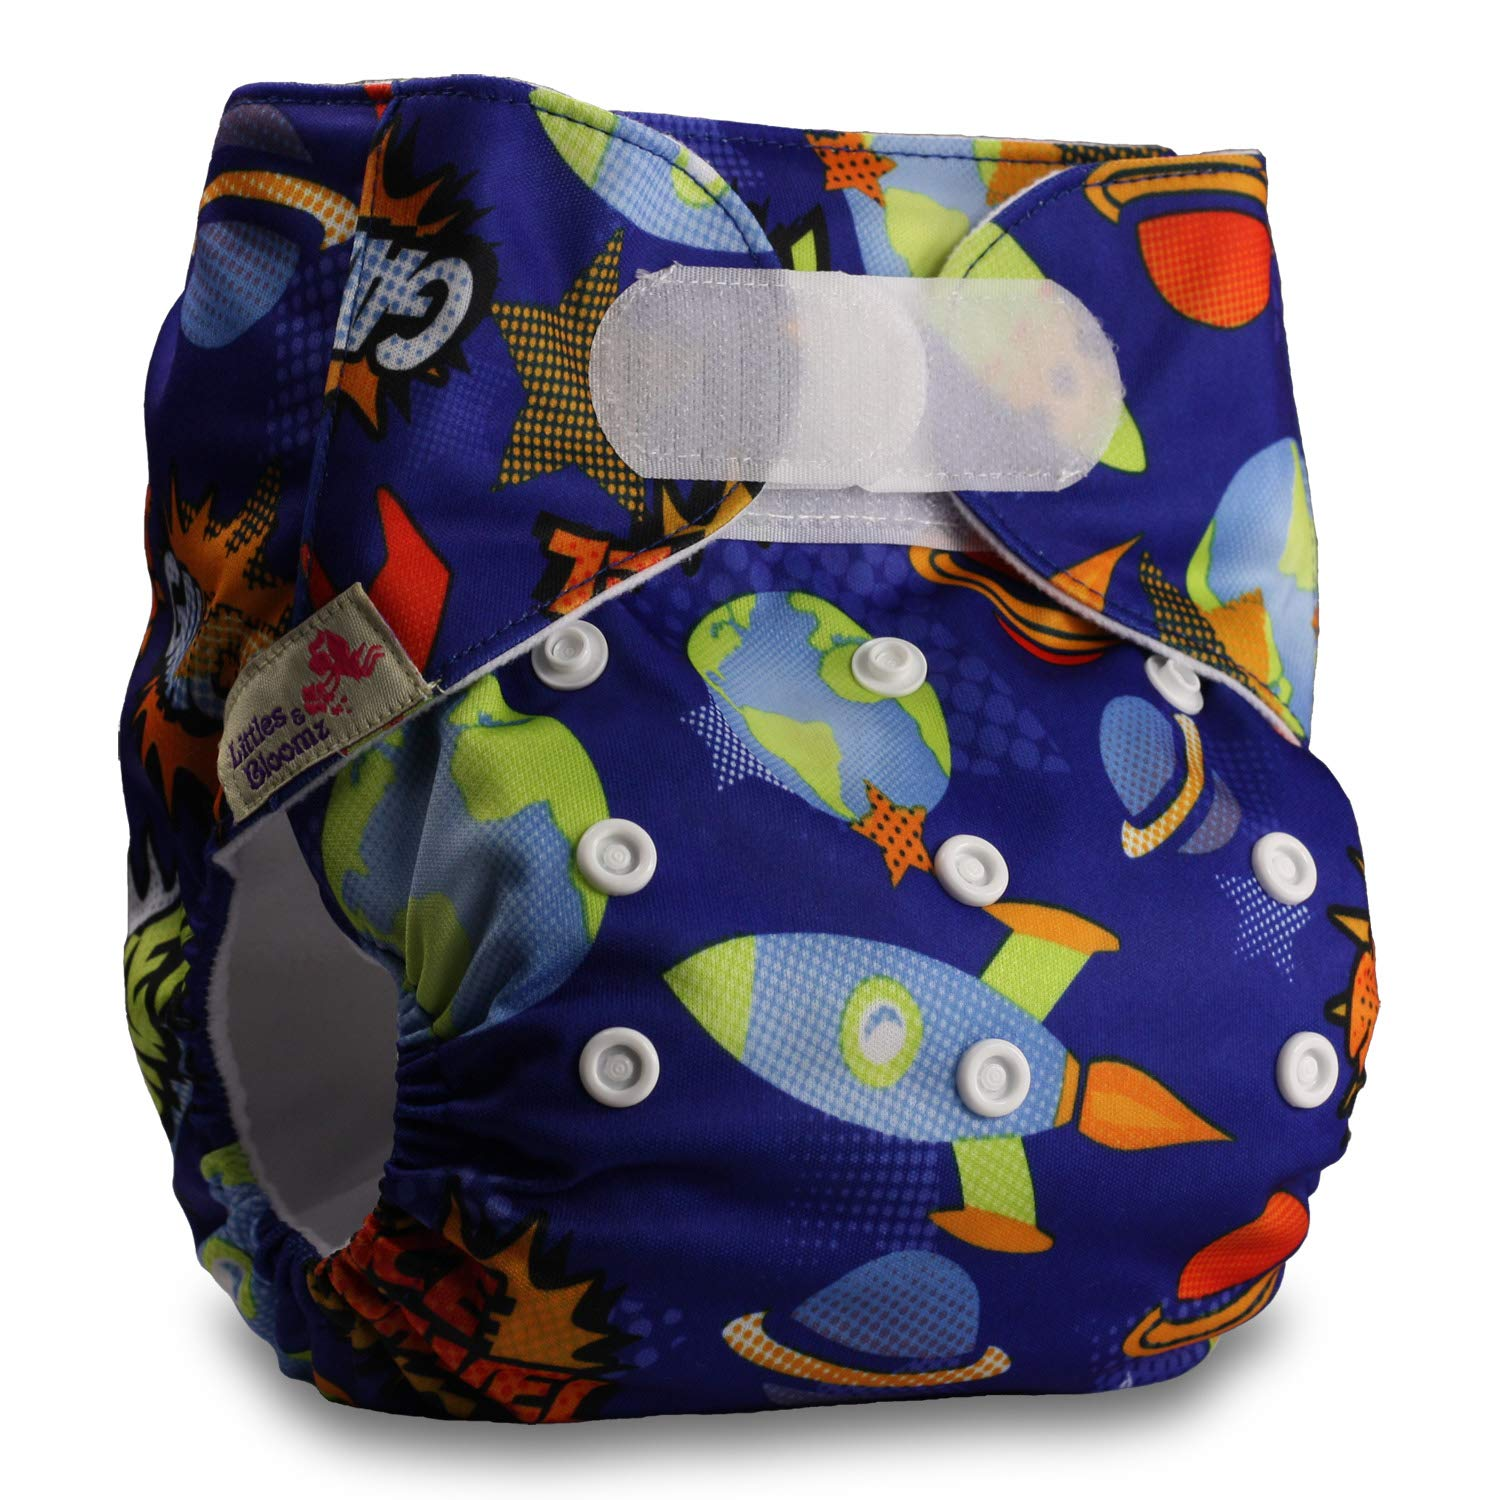 Littles /& Bloomz Without Insert Pattern 25 Set of 1 Fastener: Hook-Loop Reusable Pocket Cloth Nappy